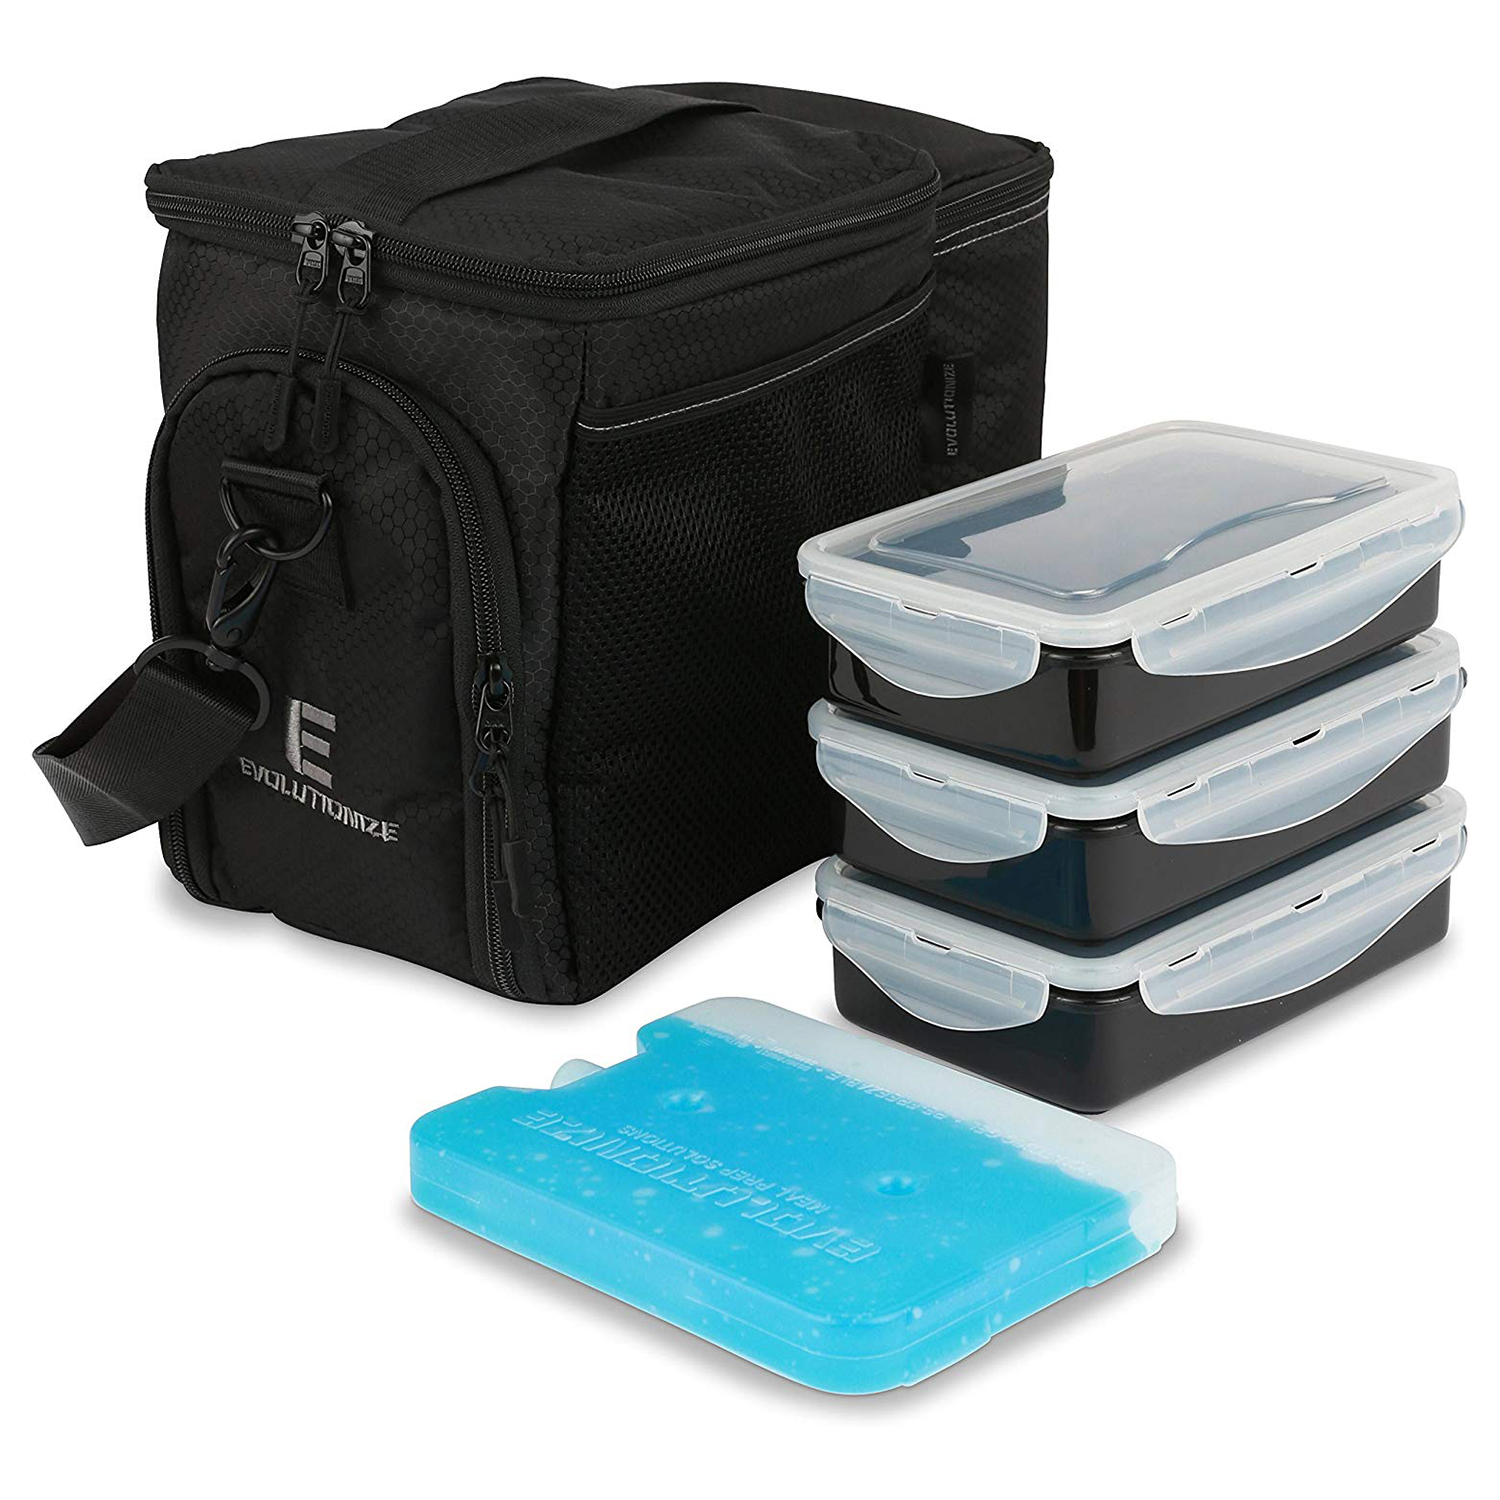 Evolutionize Meal Prep Insulated Lunch Bag Cooler Bag Patented Lunch Box